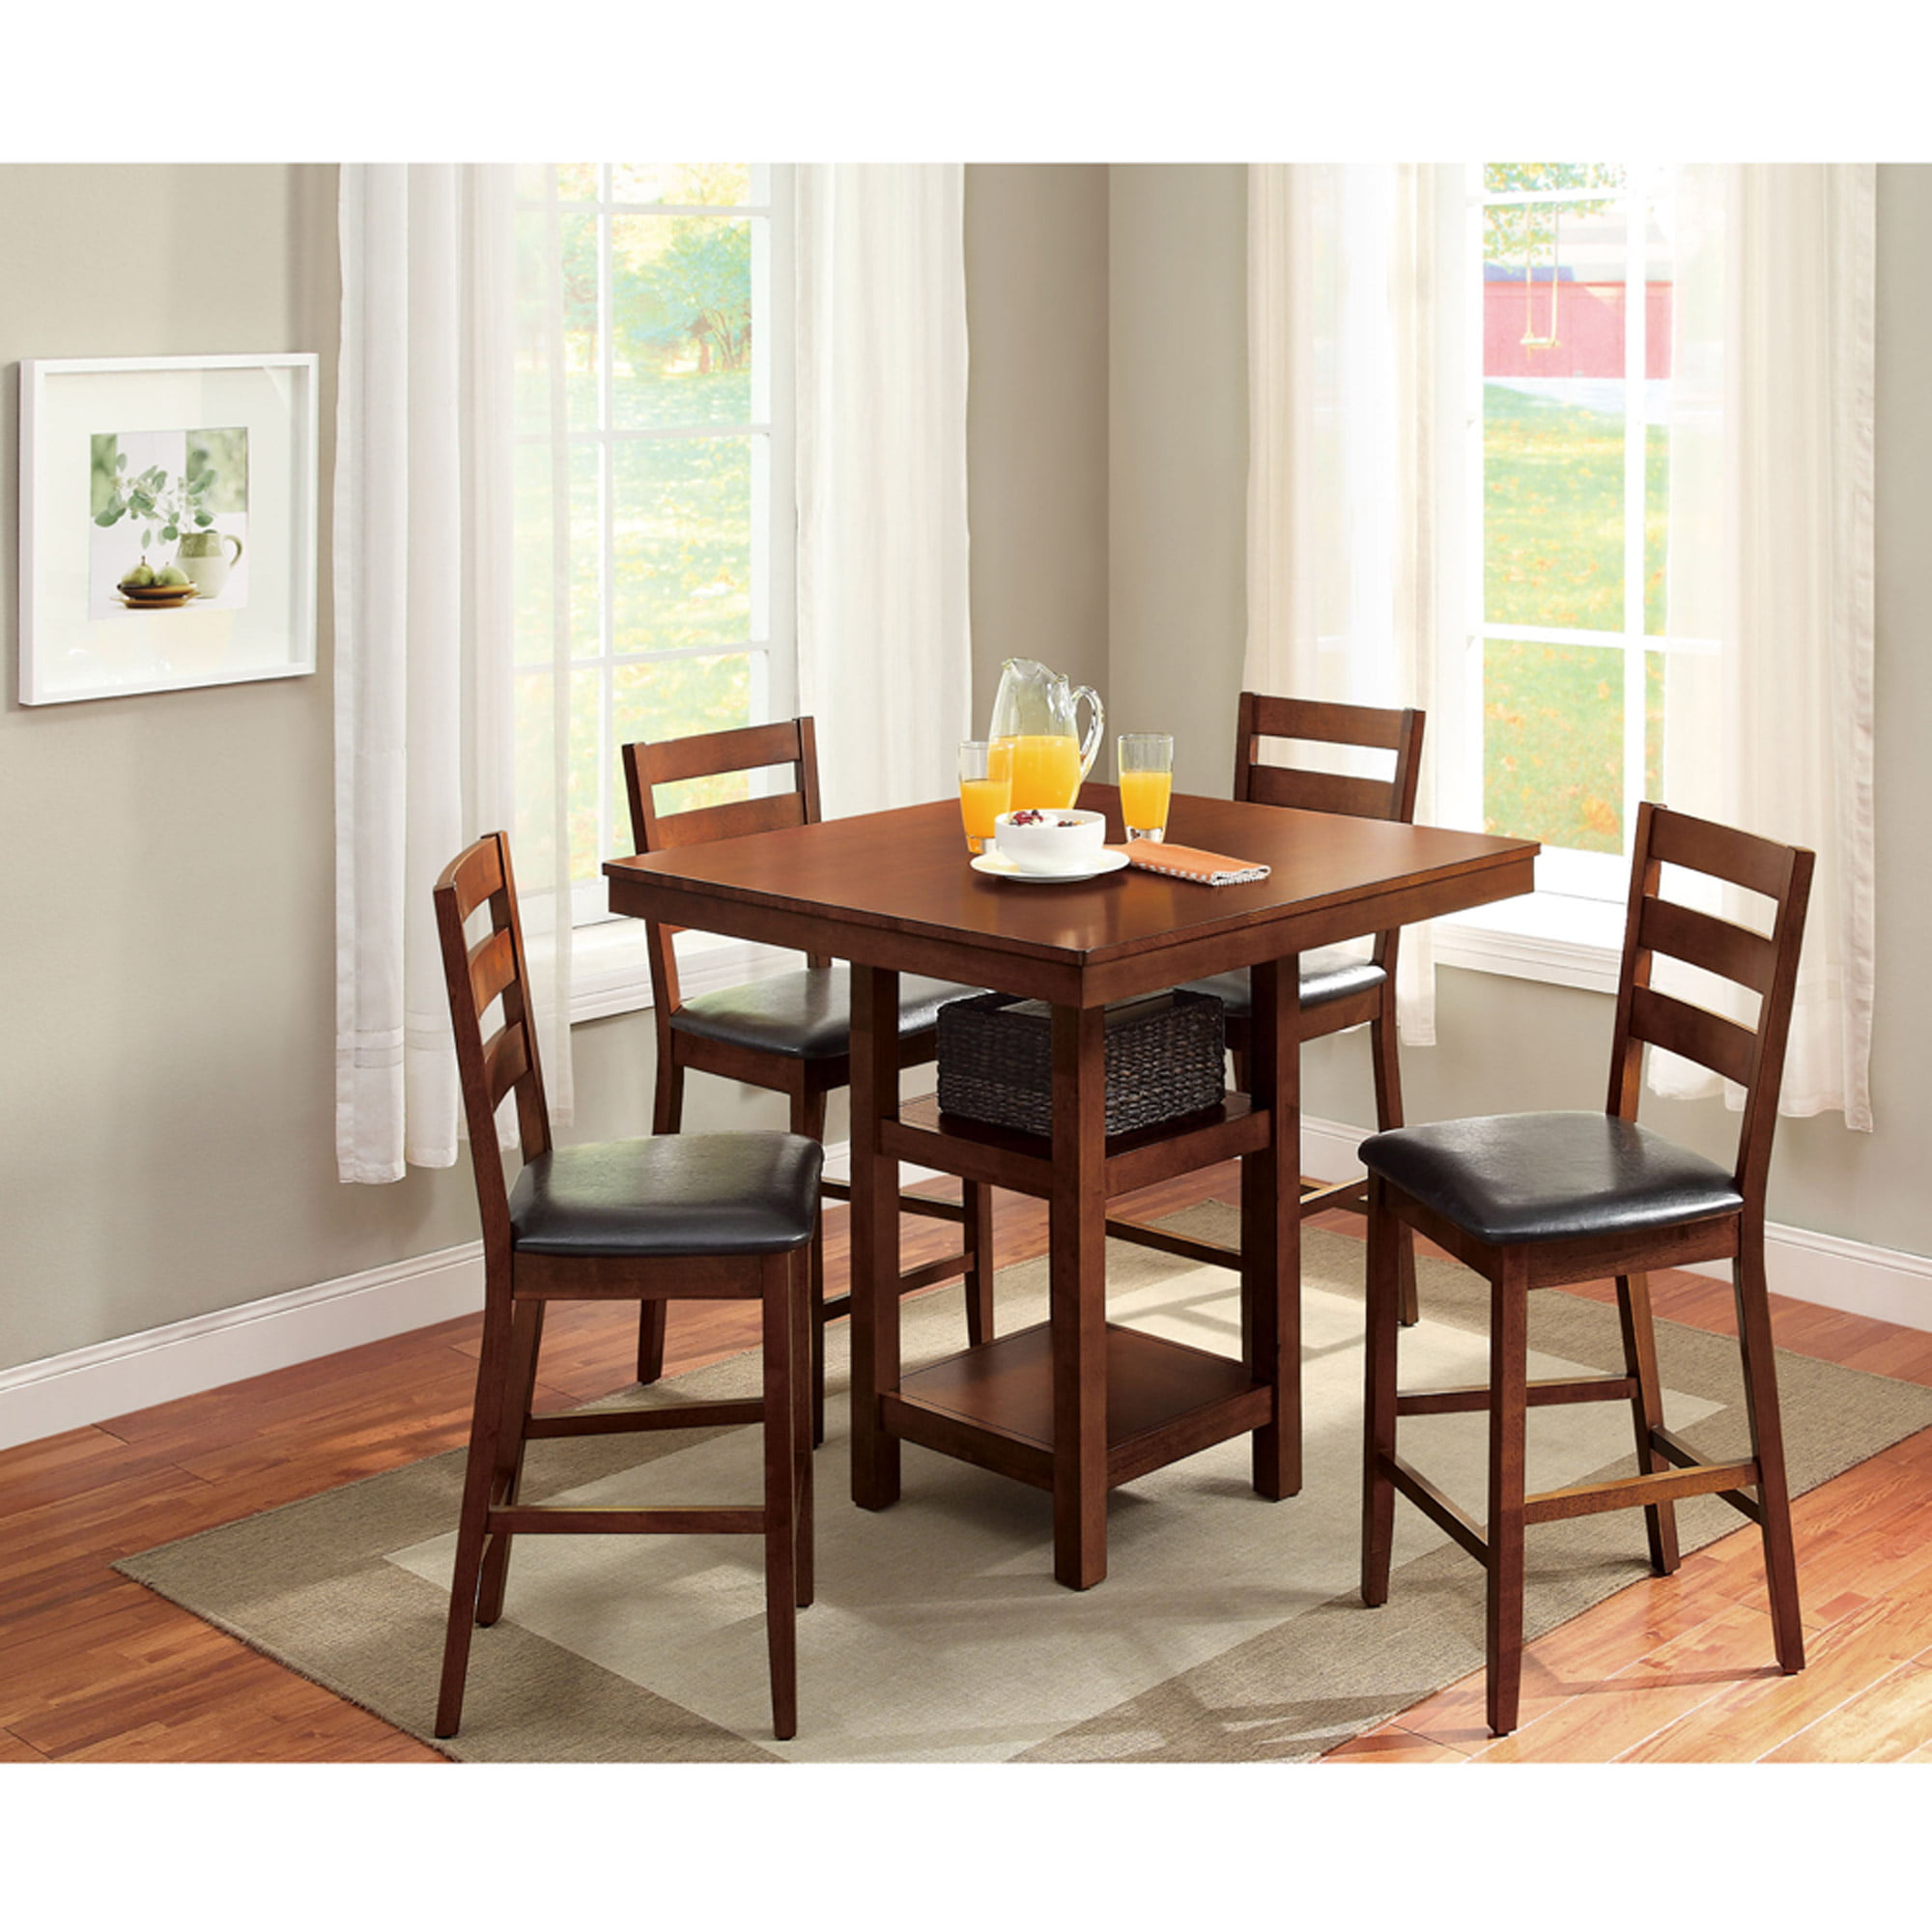 Better Homes And Gardens Dalton Park 5 Piece Counter Height Dining Set,  Mocha   Walmart.com